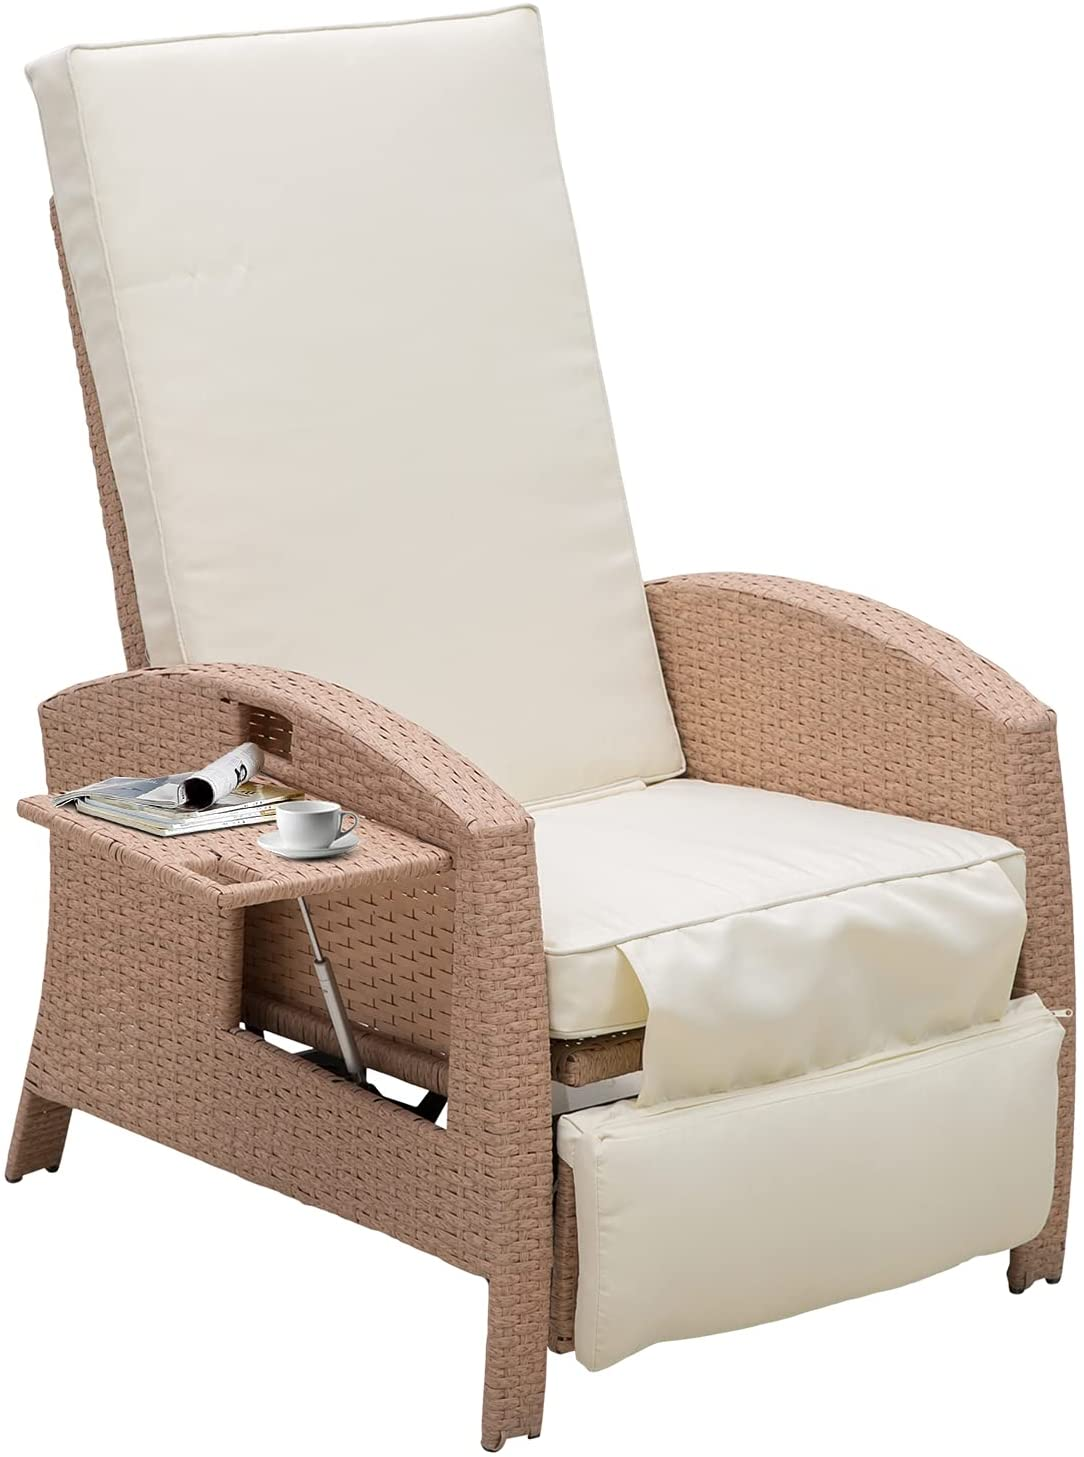 Outsunny Rattan Wicker Recliner with Regular discount Popular Side Table Adjustable Back